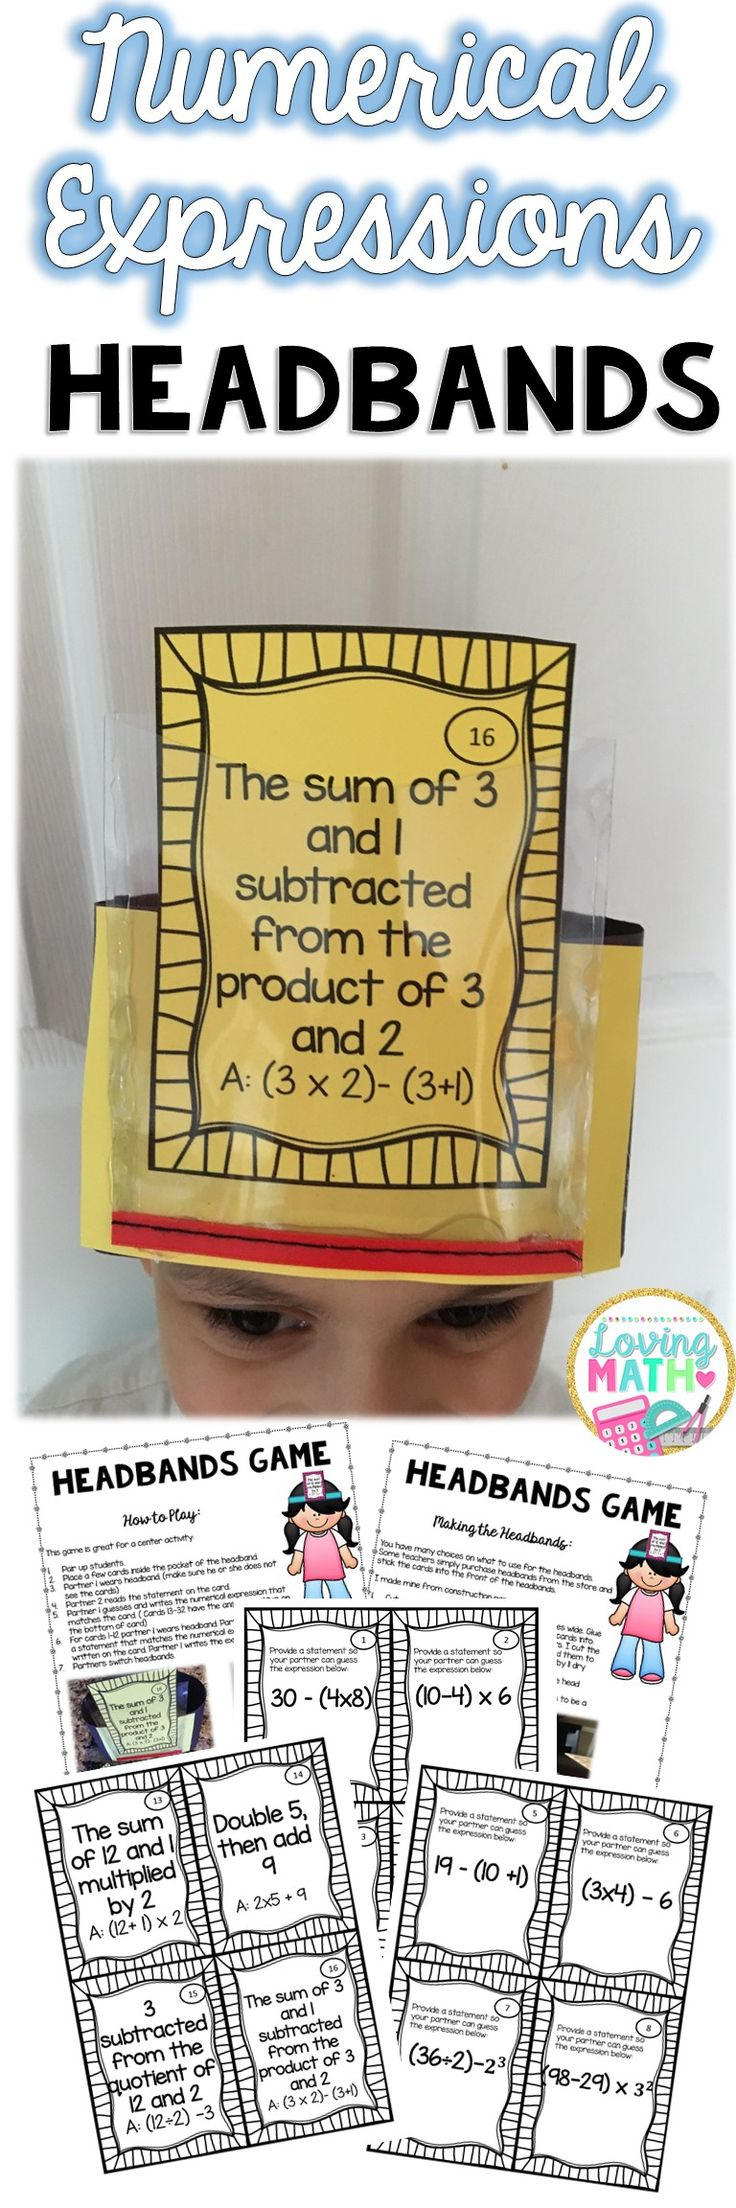 This headbands game is great for practicing numerical expressions. Highly engaging!!! Common Core 5.OA.2